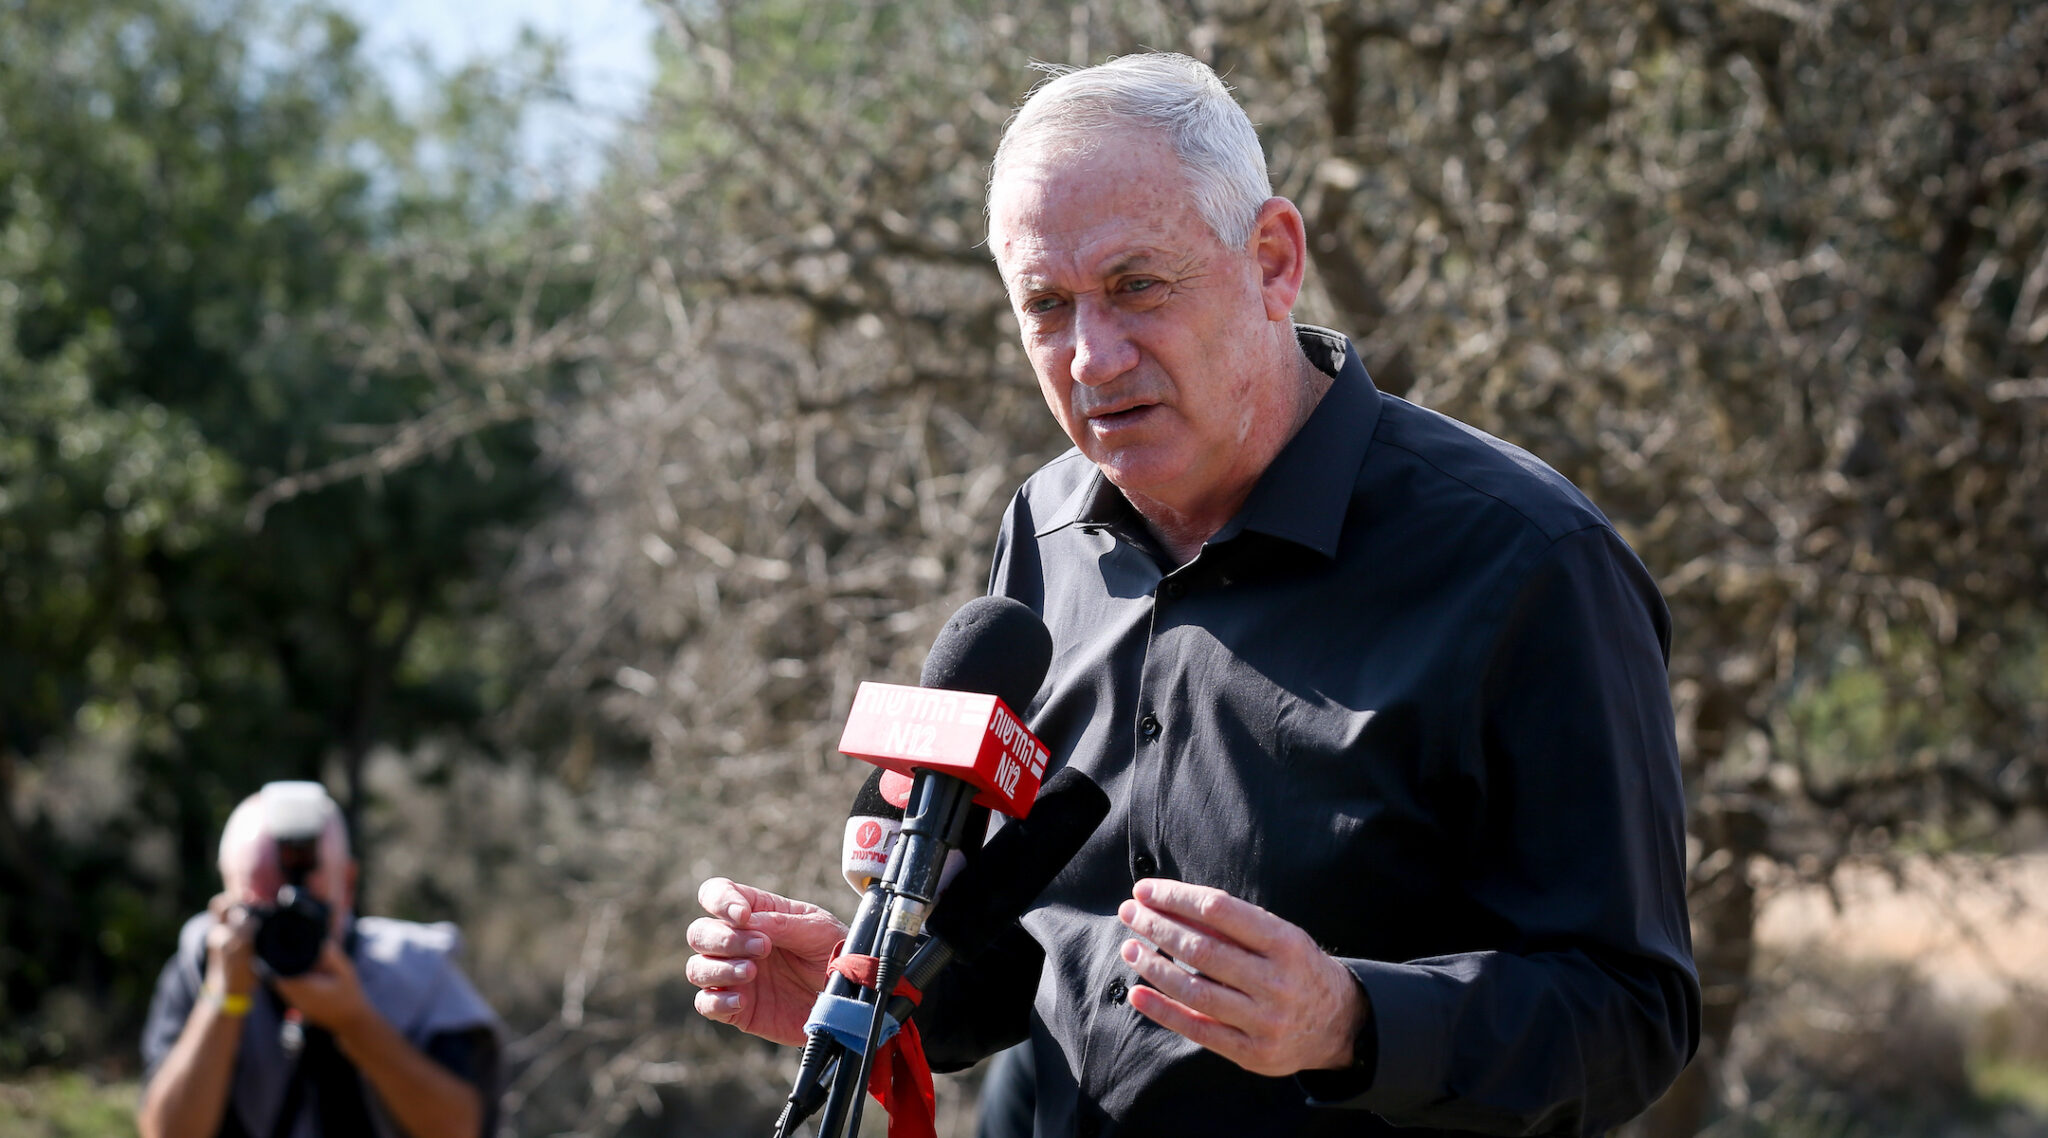 Israeli Defense Minister Benny Gantz speaks during a visit to the Israel-Lebanon border, Nov. 17, 2020. (Photo/JTA-David Cohen-Flash90)